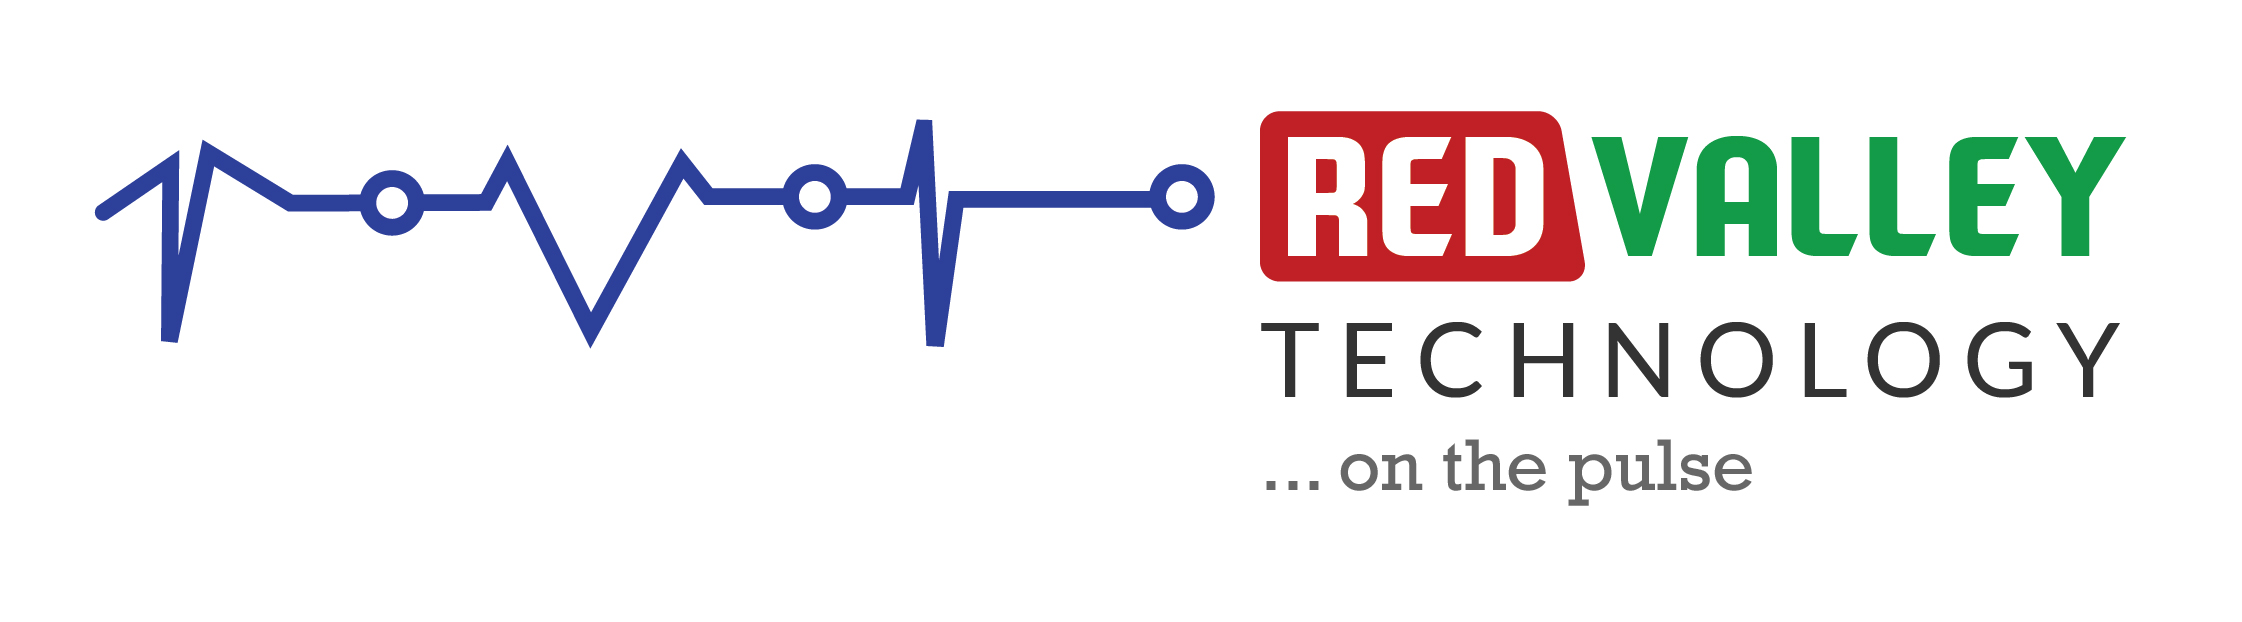 Red Valley Technology